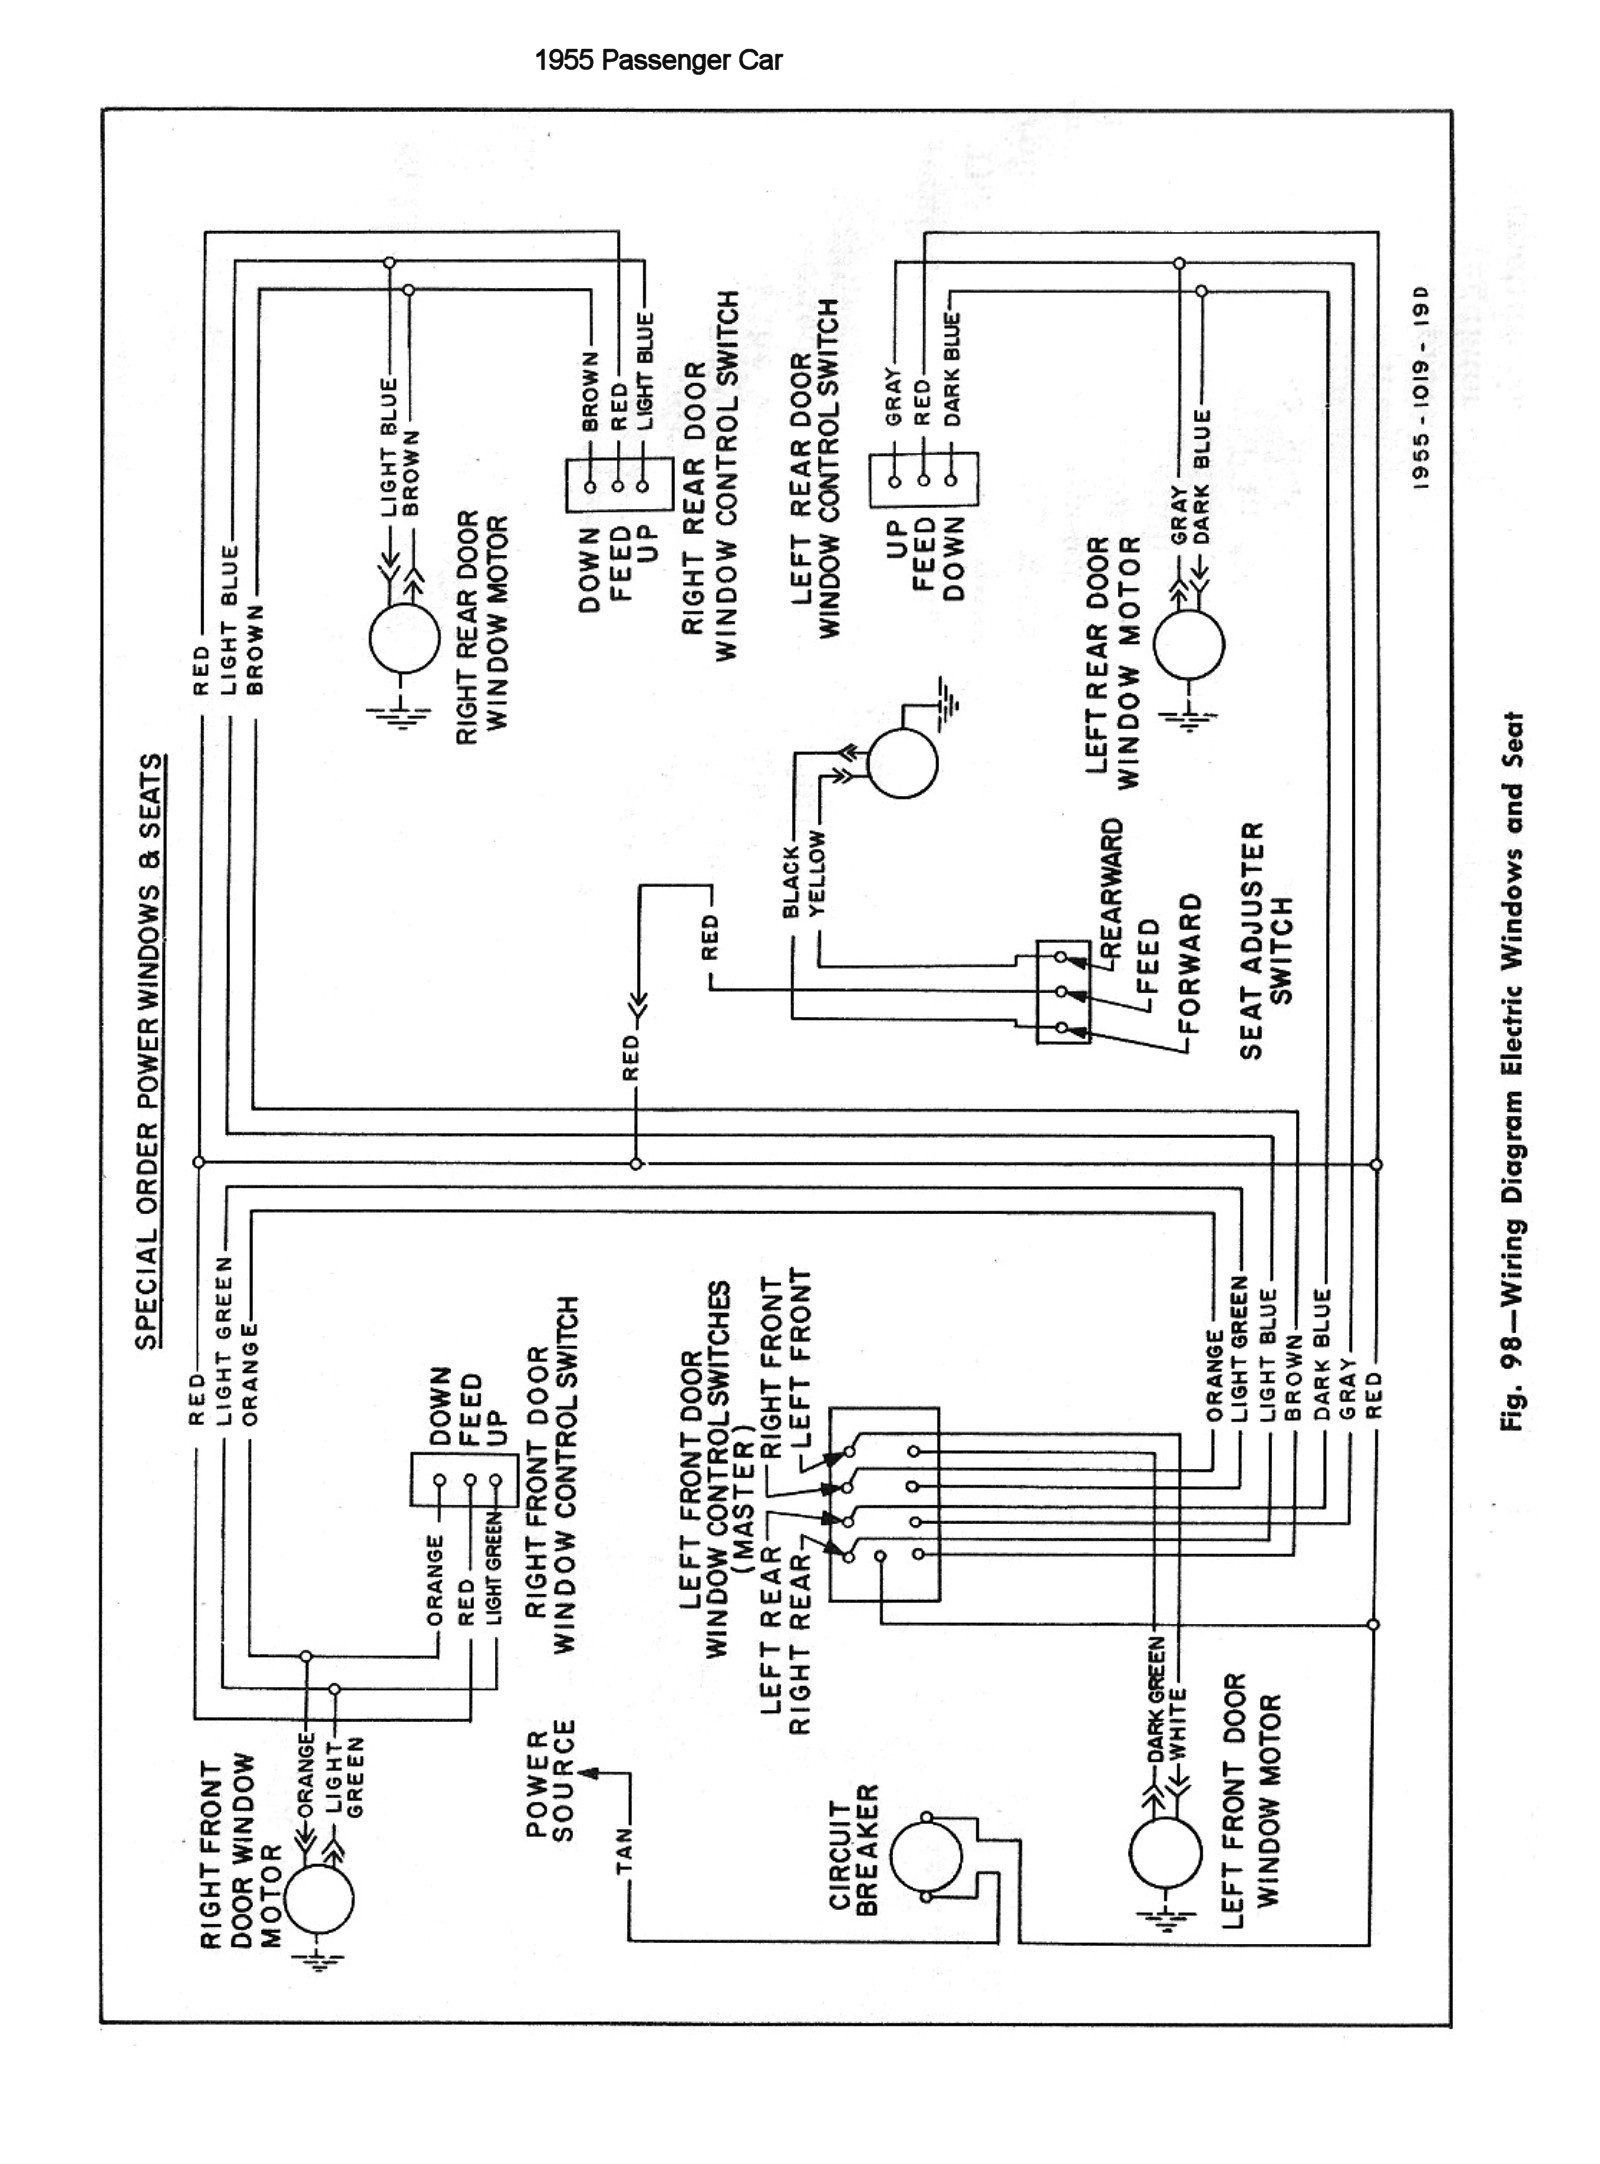 medium resolution of 1955 chevy turn signal wiring diagram wiringdiagram org rh pinterest com 57 chevy turn signal wiring